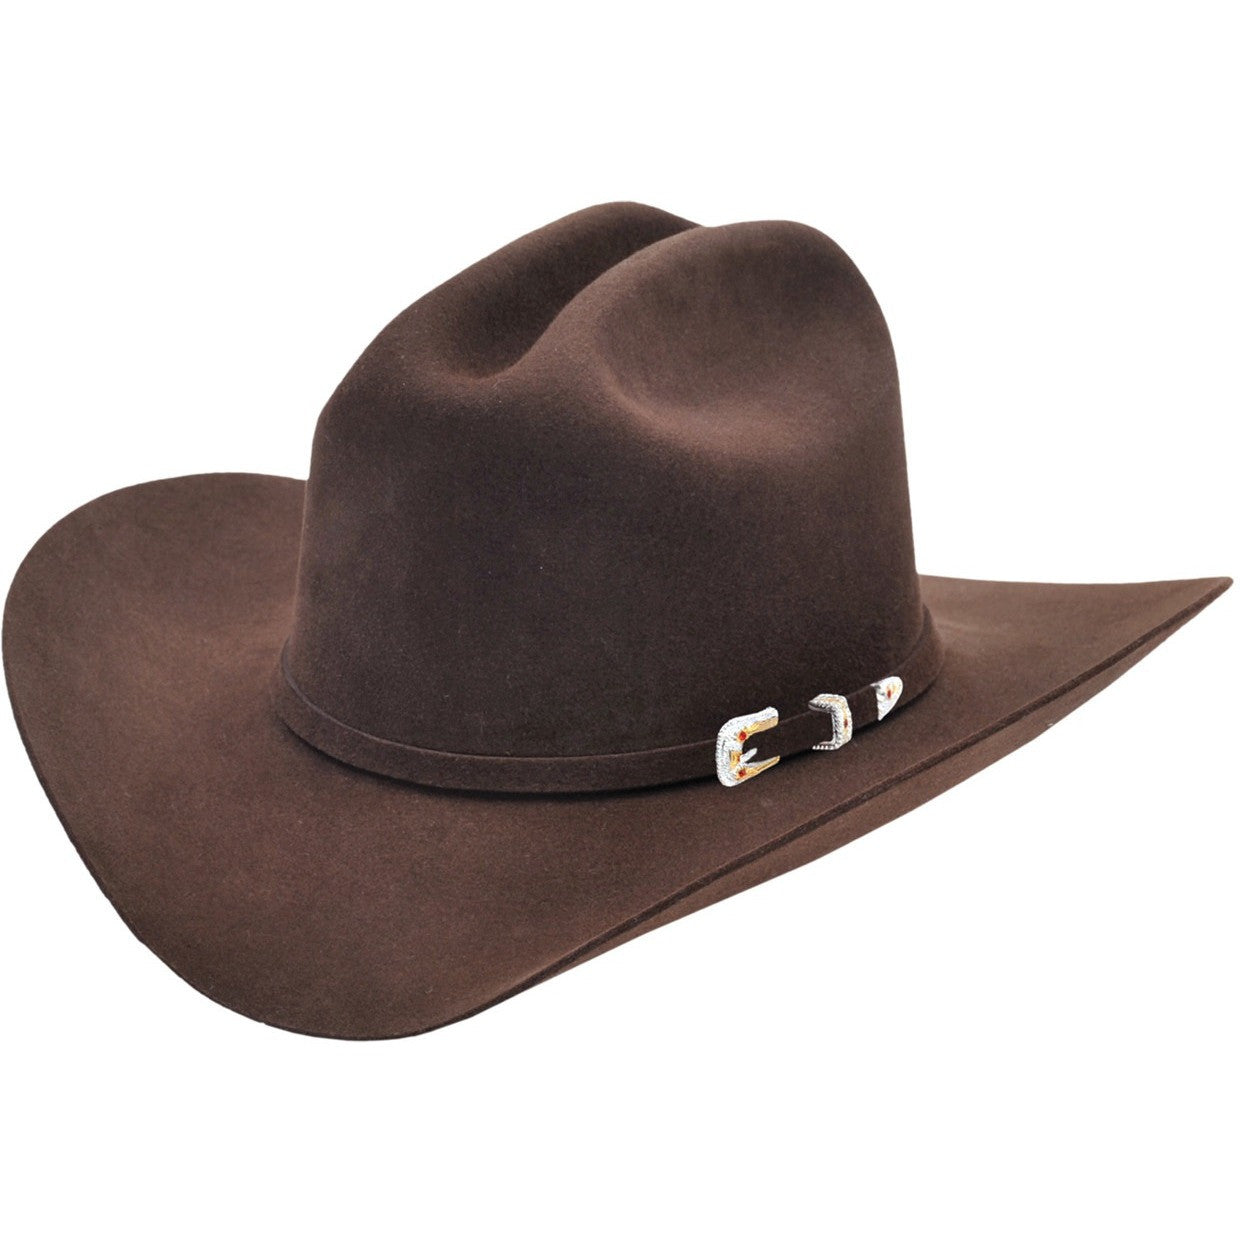 Los Altos Hats-Joan Style Felt Cowboy Hat 4x 6x 10x Available - yeehawcowboy e0438ec3aff